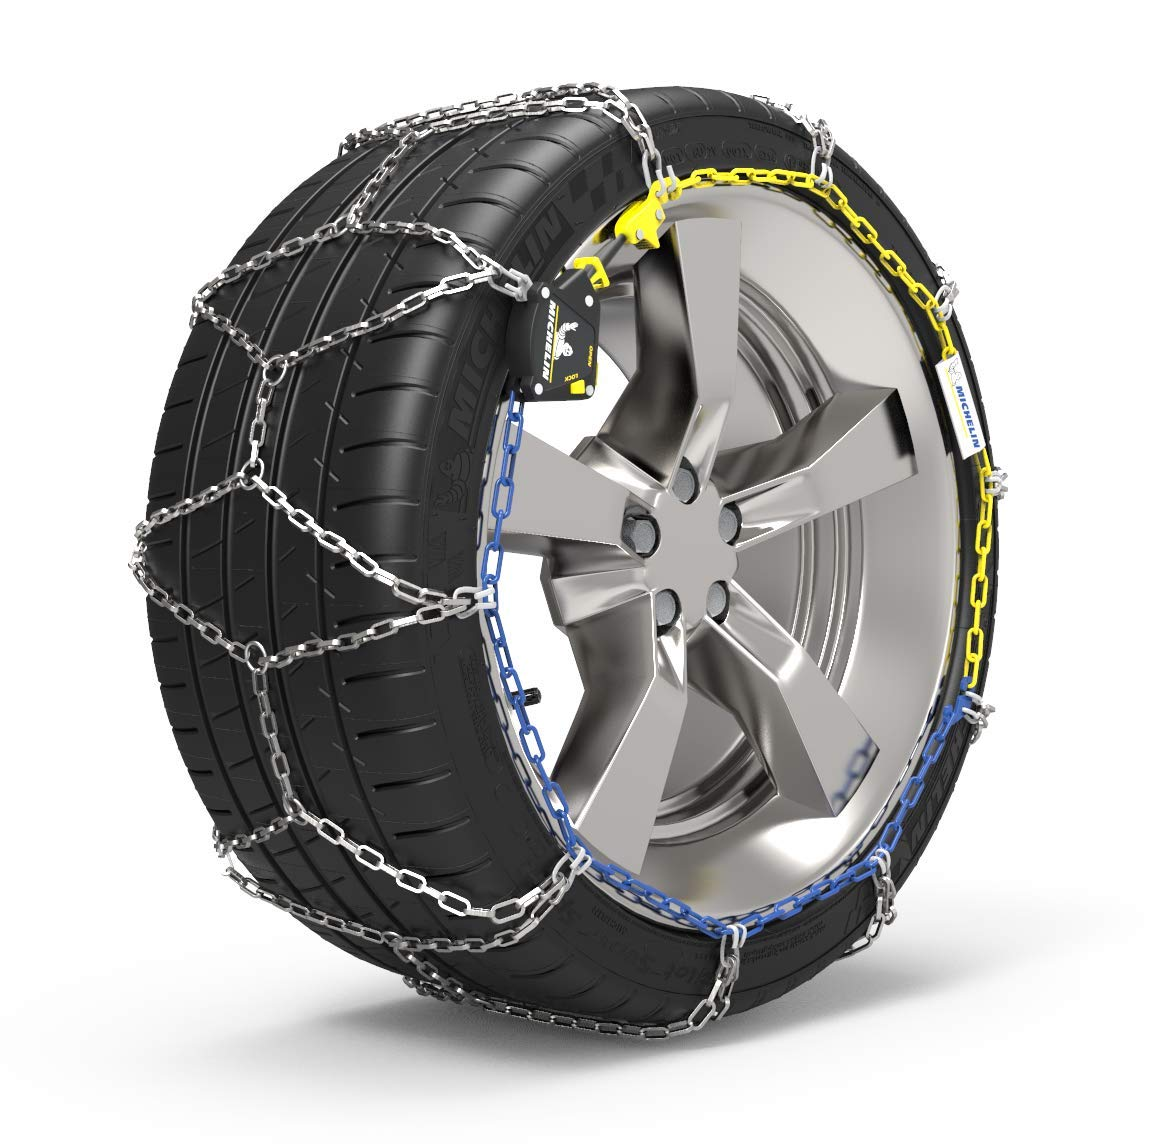 MICHELIN Chaines à neige Extrem Grip, Tension Automatique